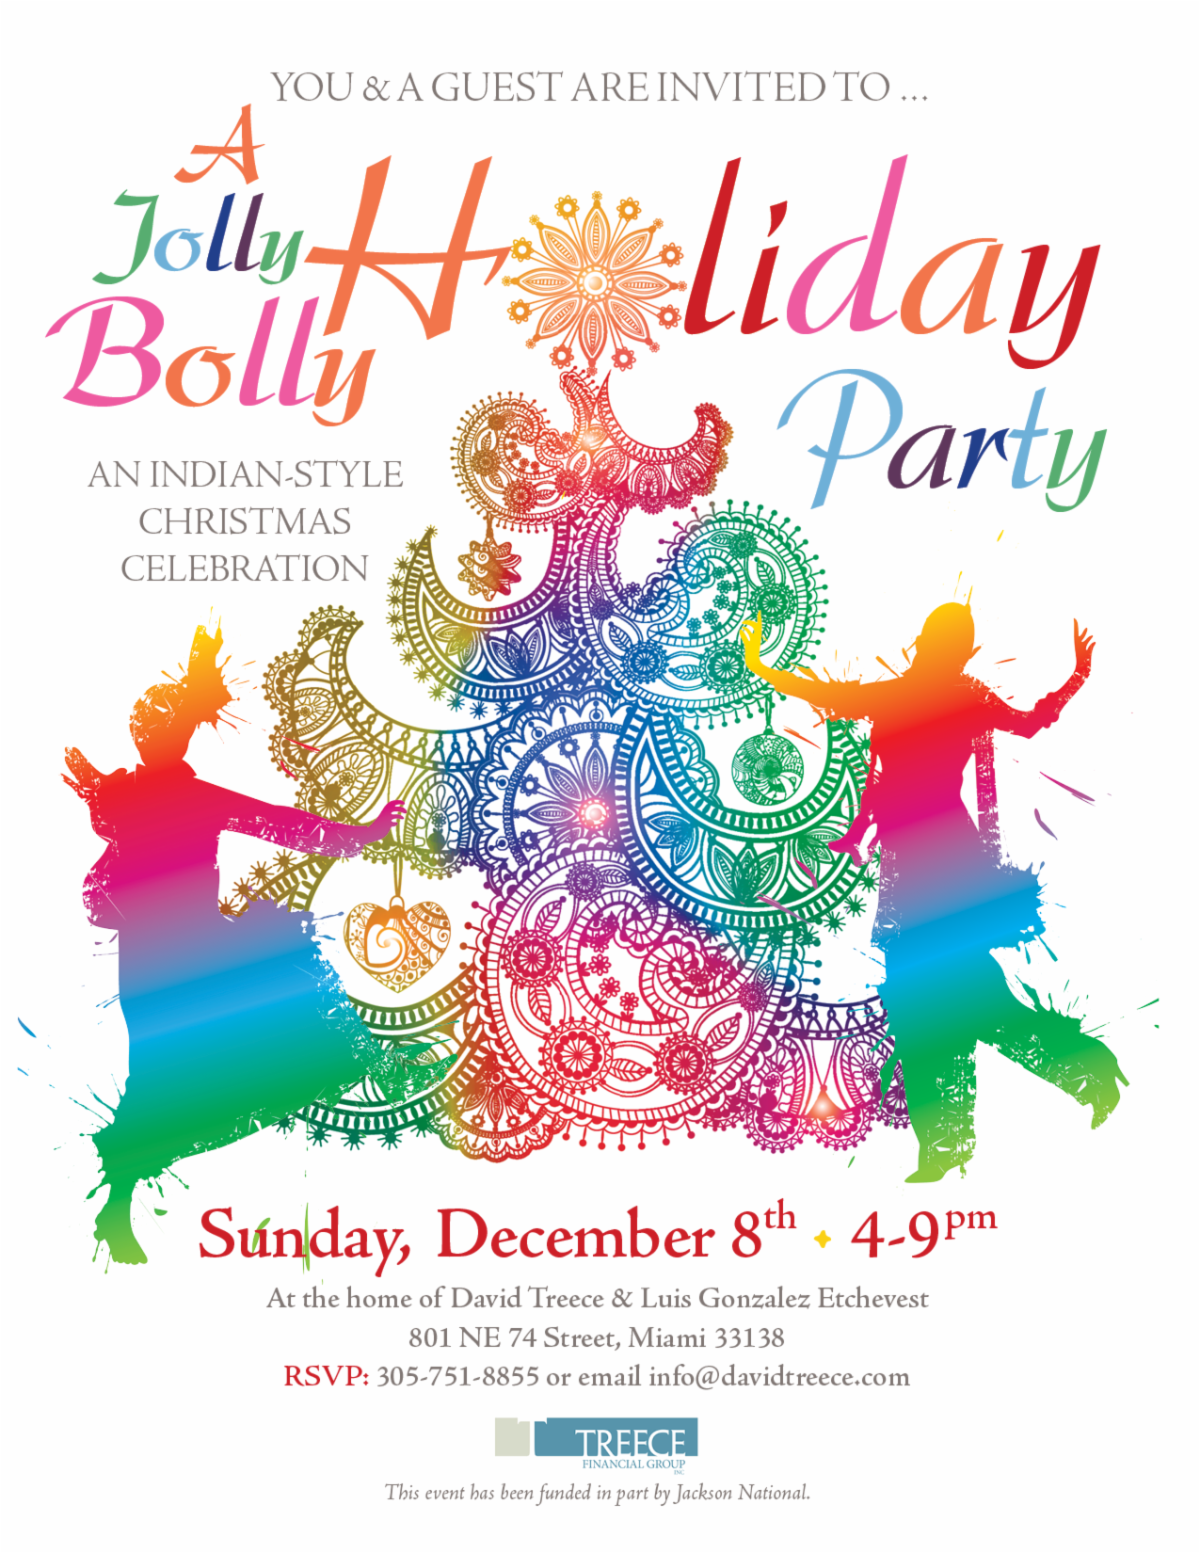 A Jolly Bolly Holiday Party: Sunday December 8th, 4-9 pm